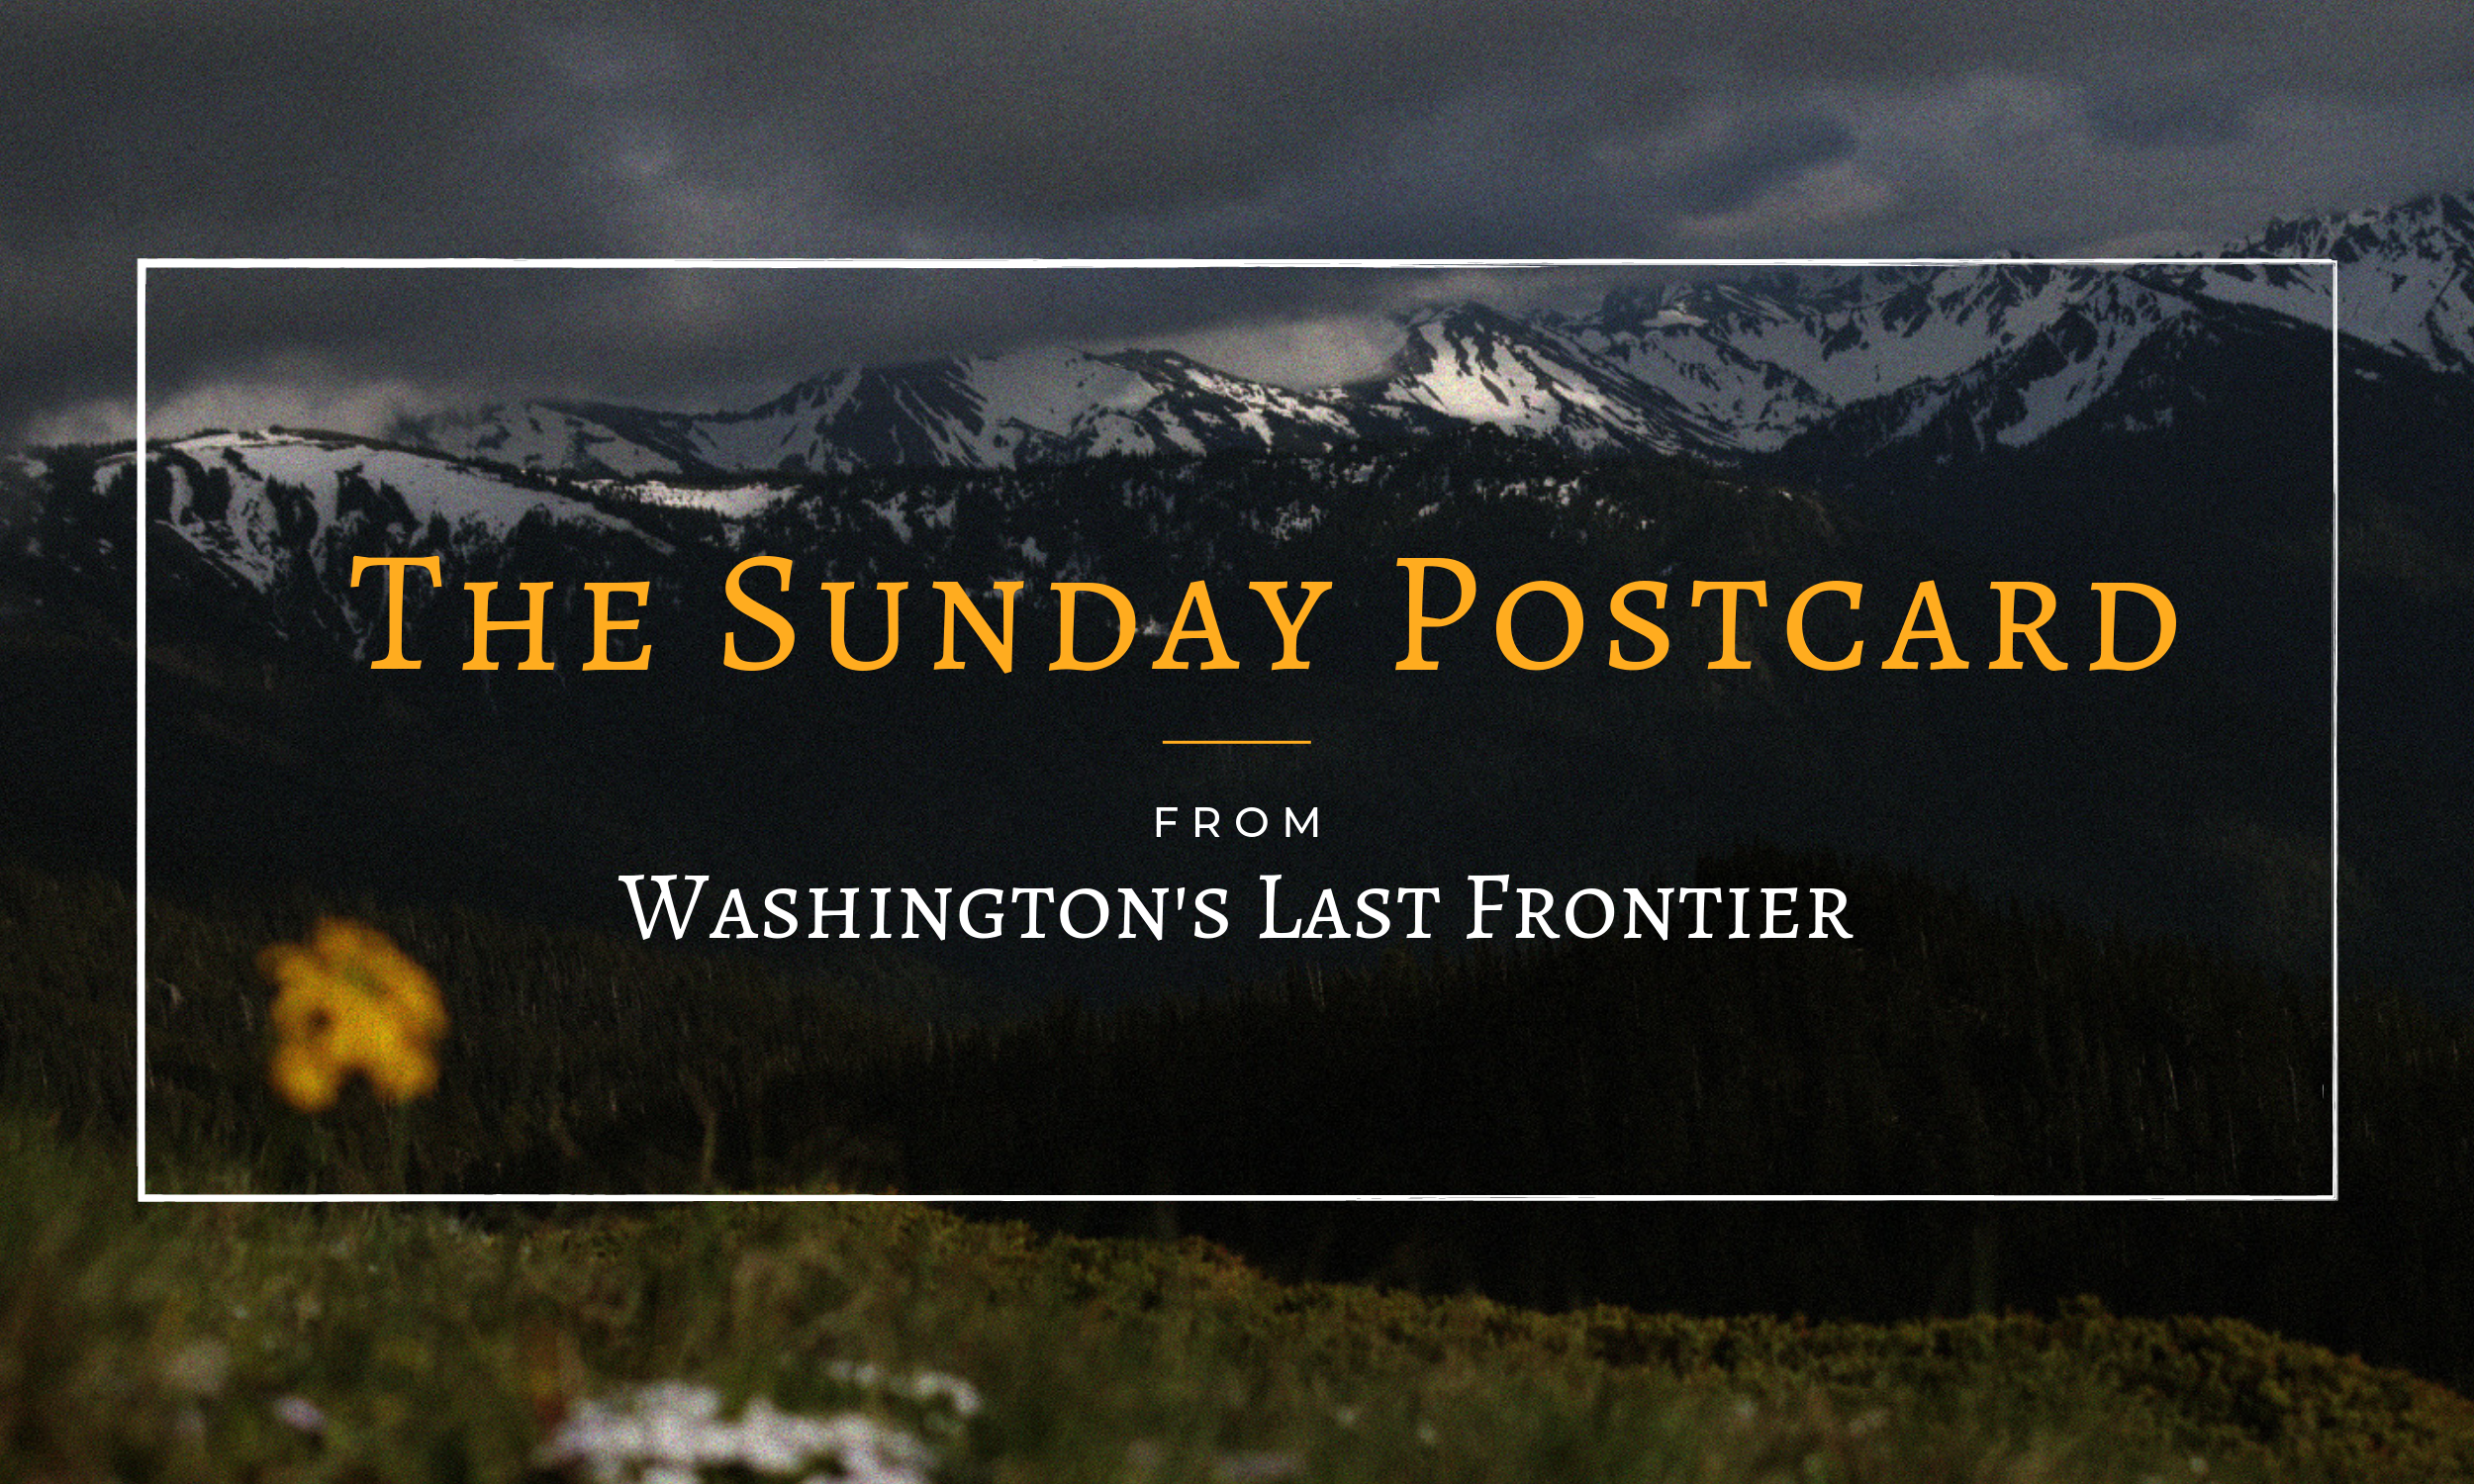 Washington's Last Frontier Sunday Postcard.png